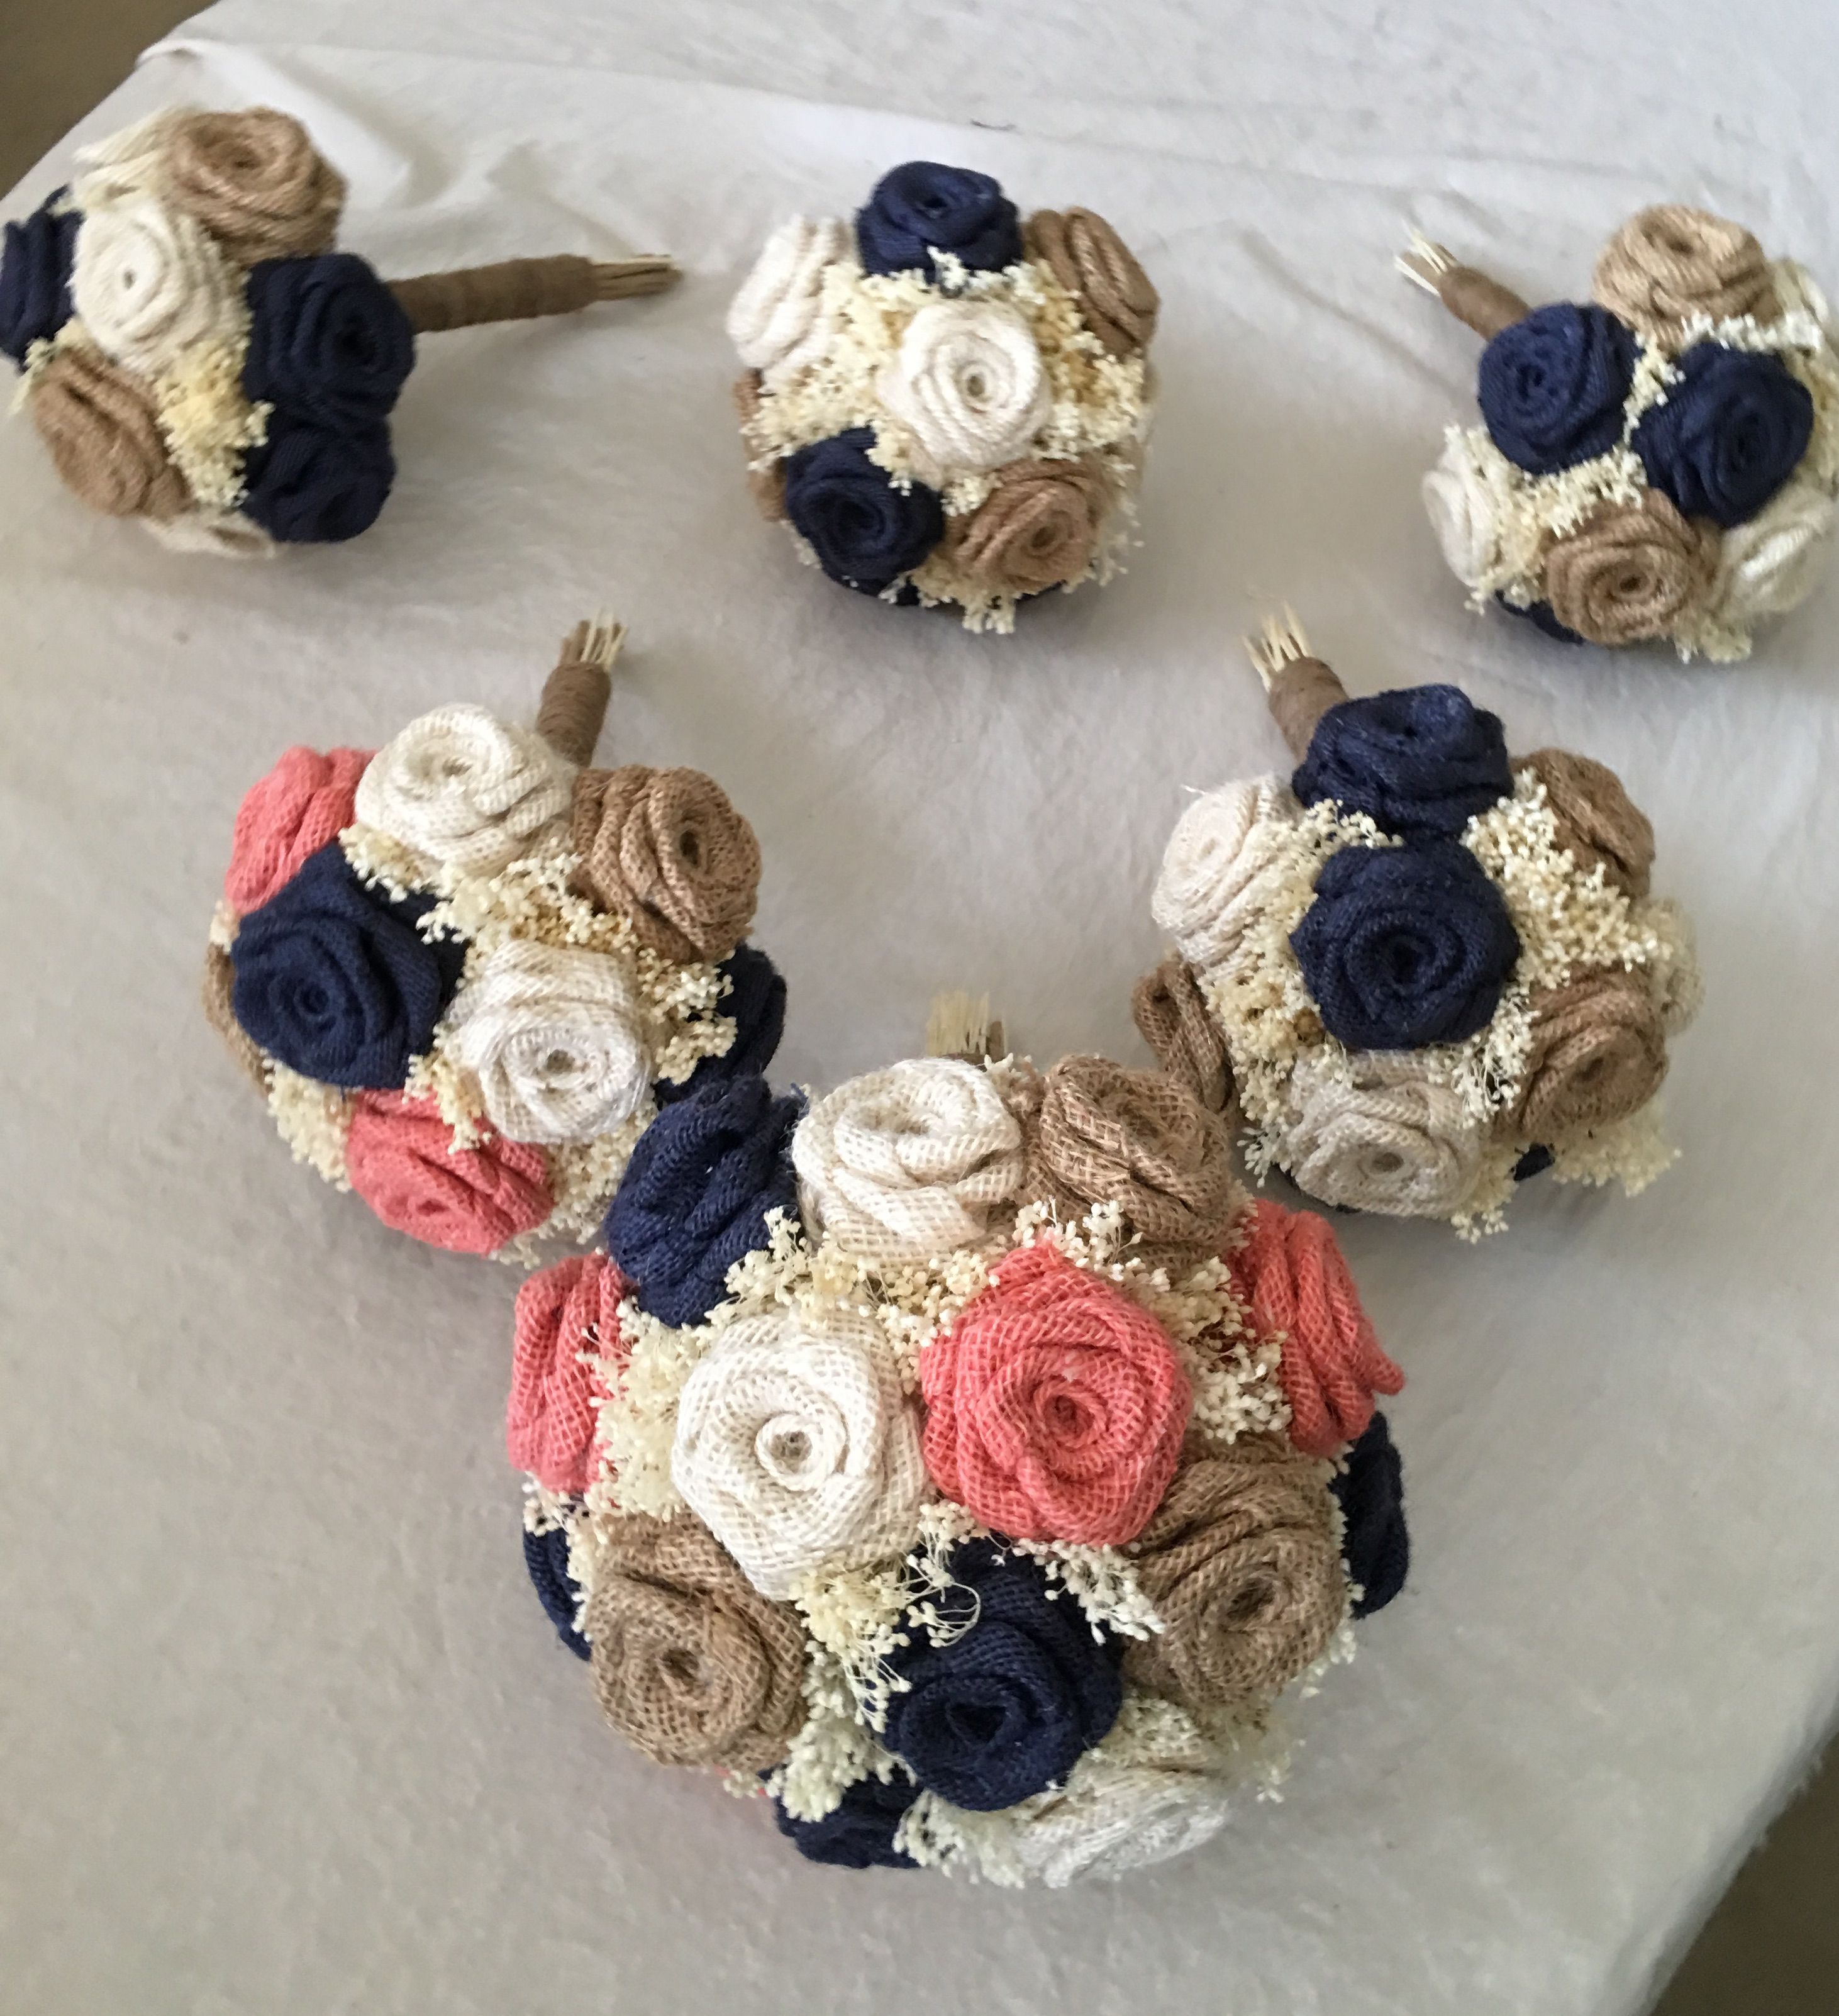 Coral navy natural ivory burlap wedding bouquets choose size burlap bouquets in coral navy natural and ivory each bouquet including every flower if 100 handmade from scratch to create this bouquets with rustic izmirmasajfo